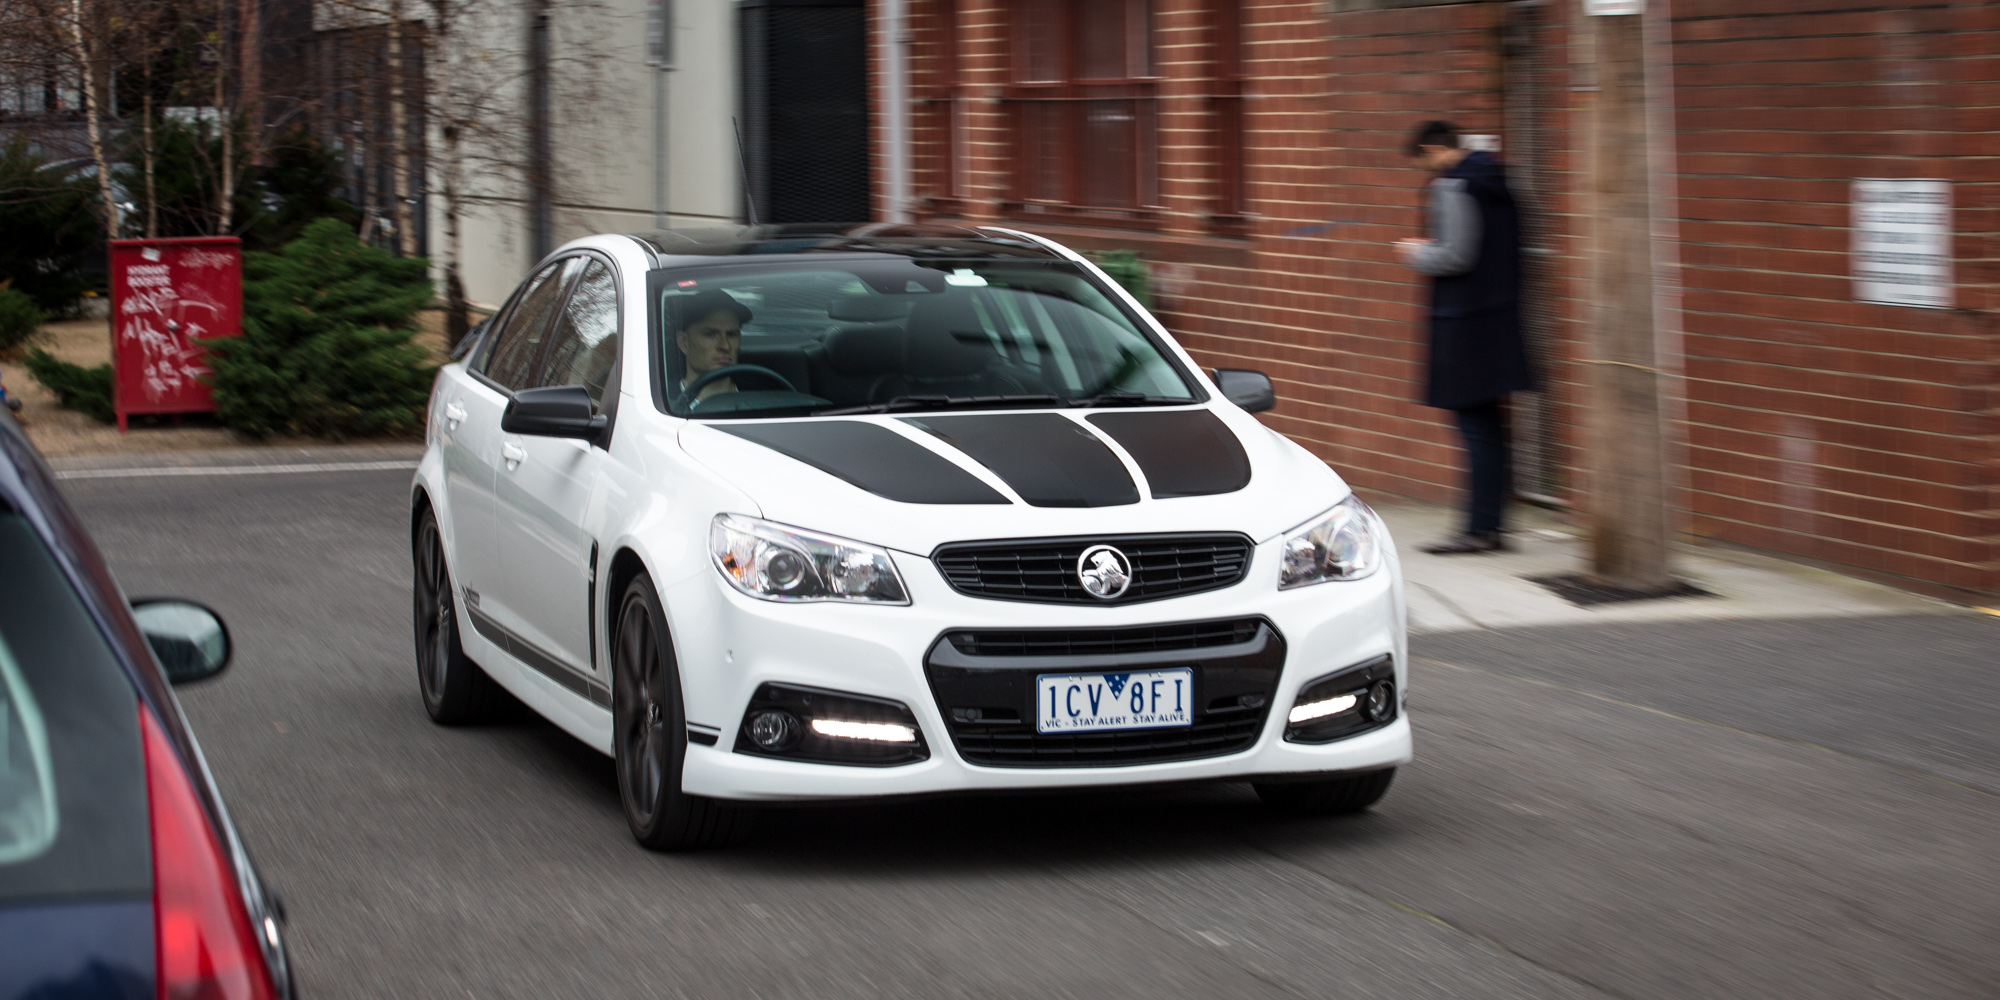 2015 Holden Commodore Ss V Review Craig Lowndes Special